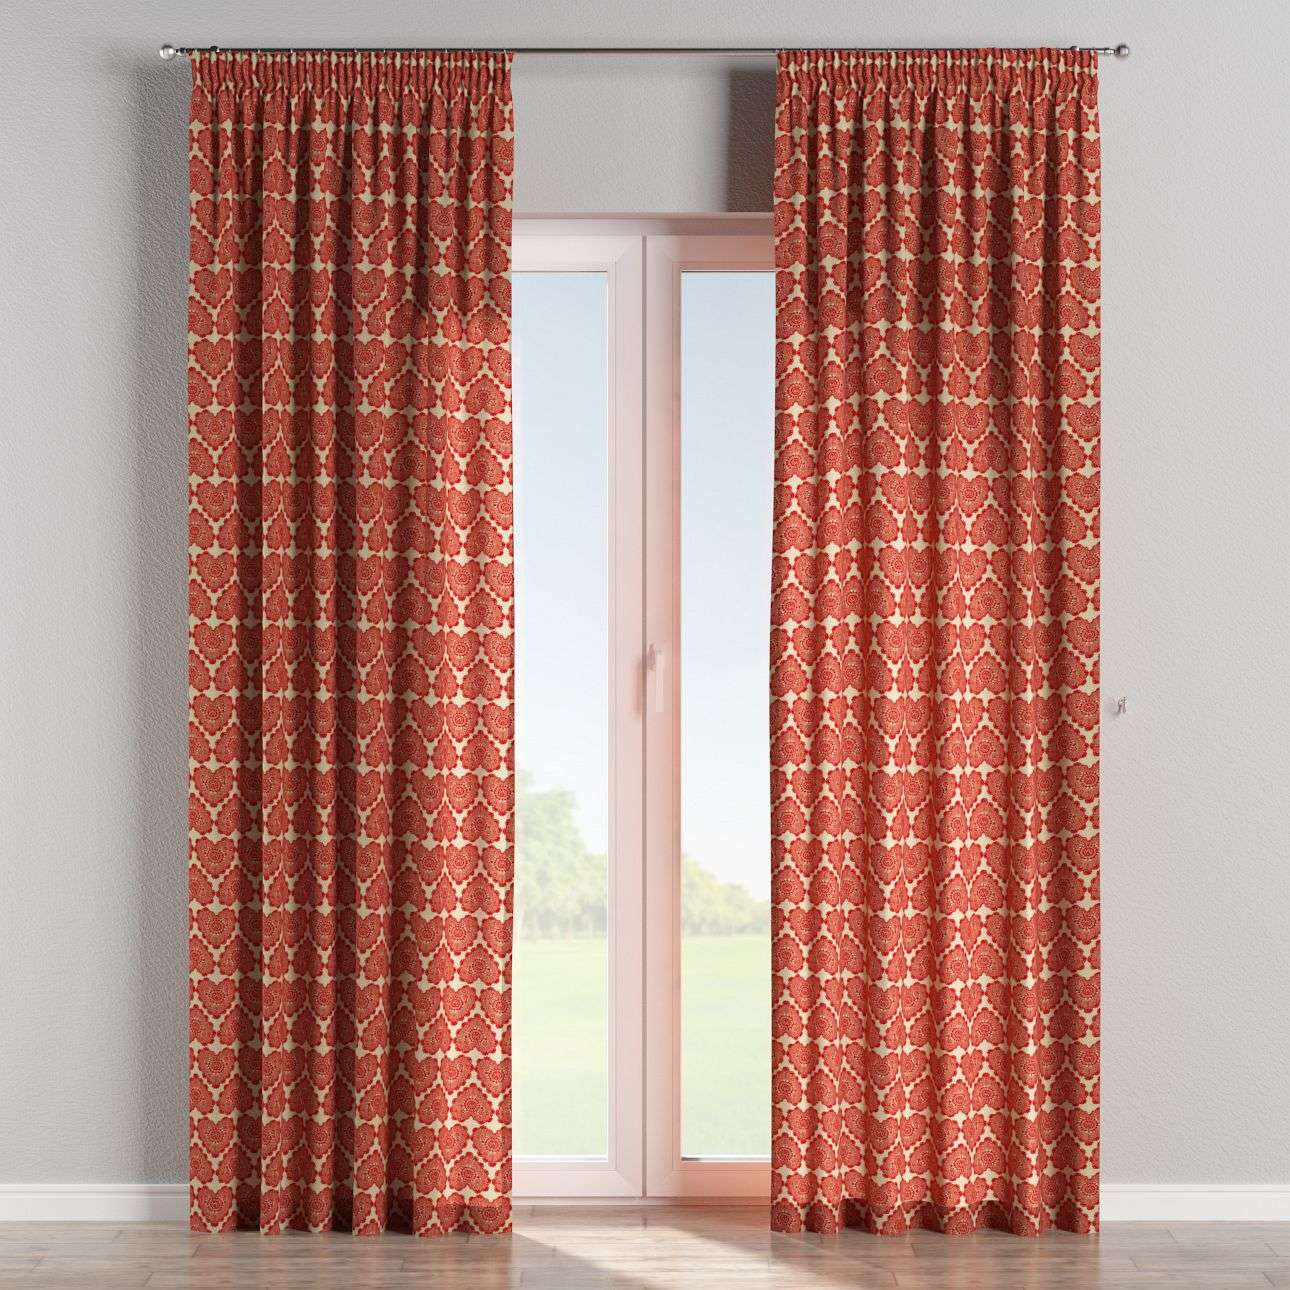 Pencil pleat curtains 130 x 260 cm (51 x 102 inch) in collection Freestyle, fabric: 629-17